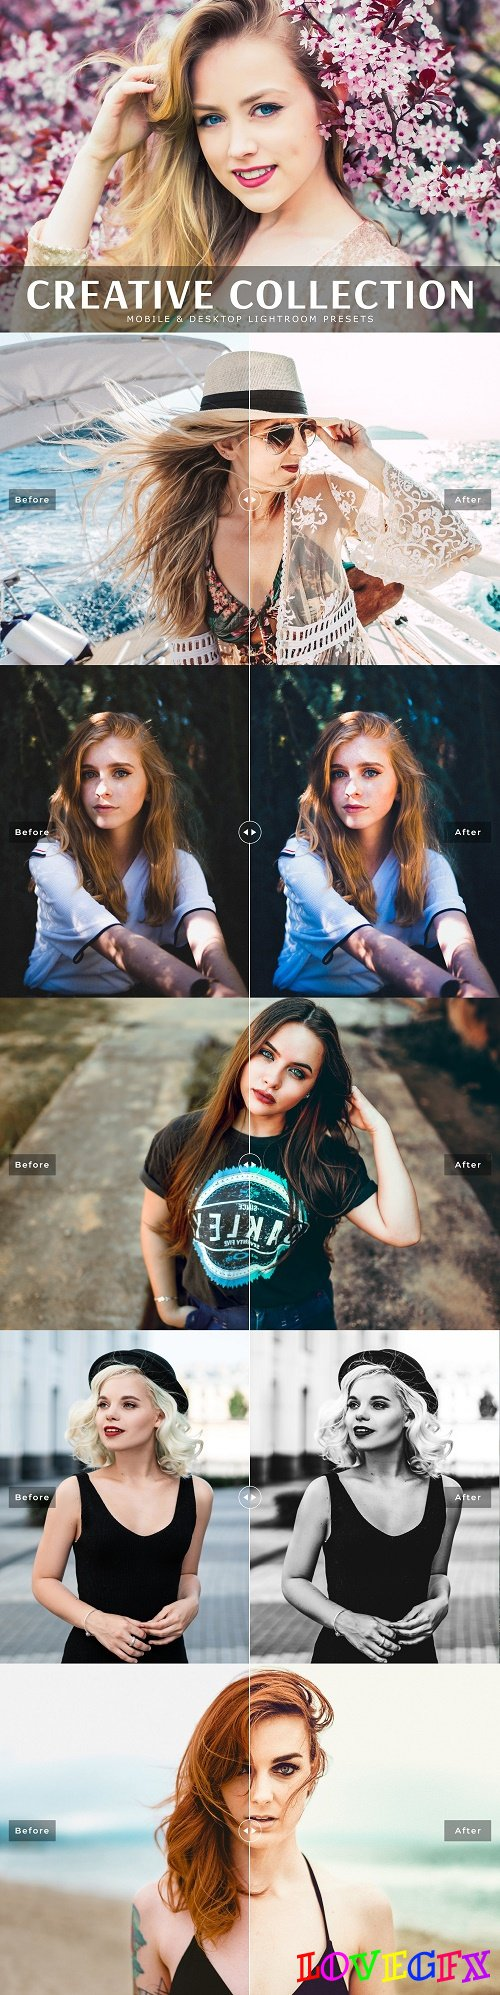 Creative Collection Lightroom Preset - 3812778